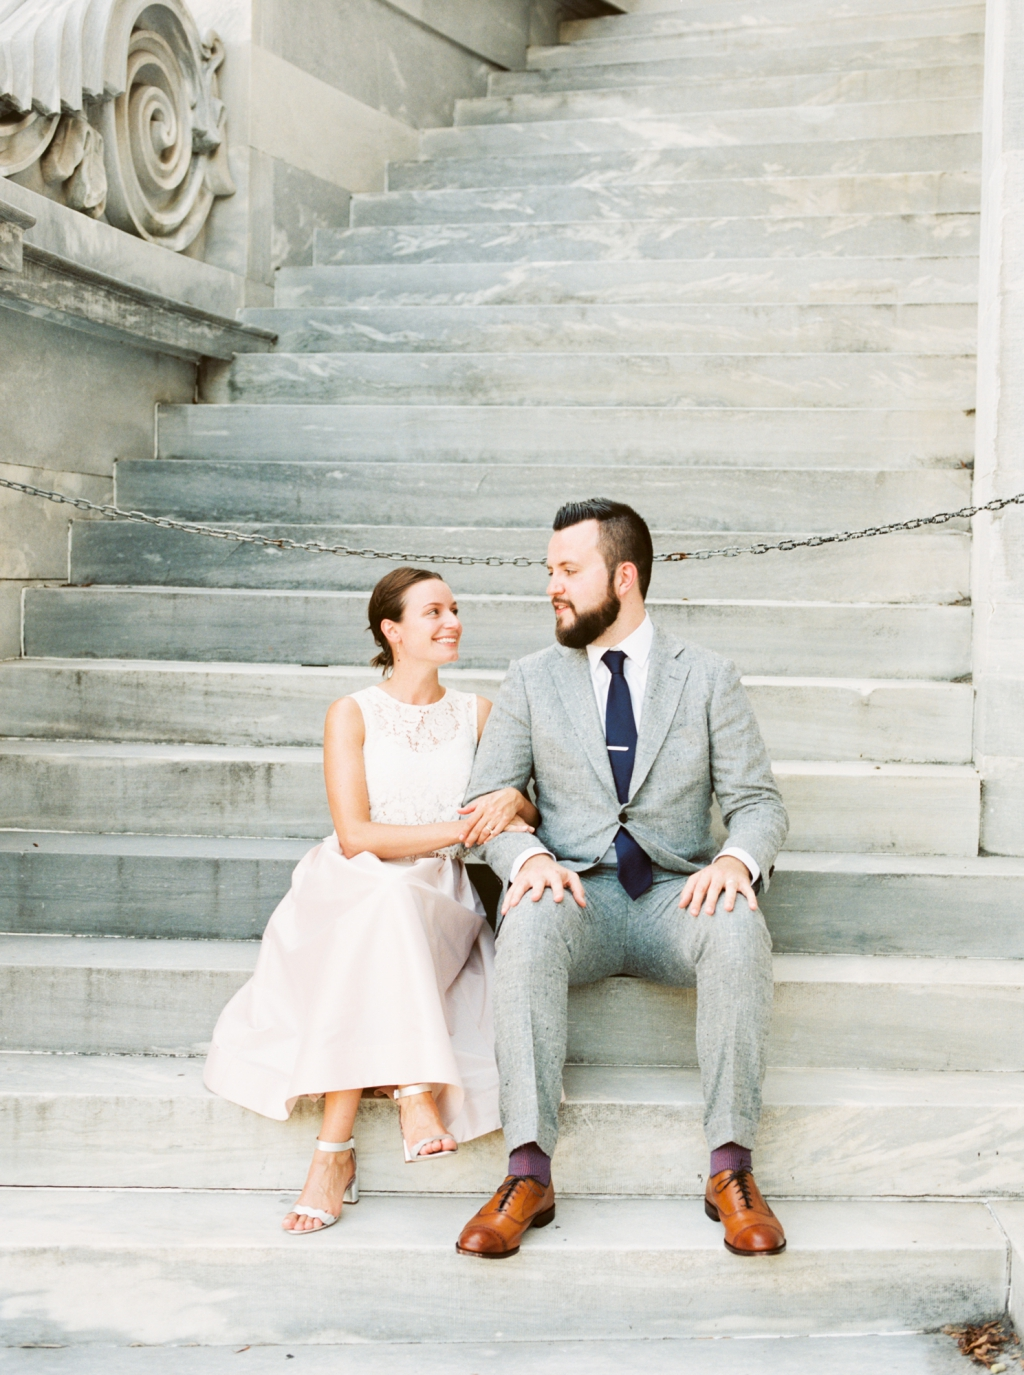 haley-richter-photography-intimate-summer-wedding-palomar-hotel-old-city-philadelphia-180